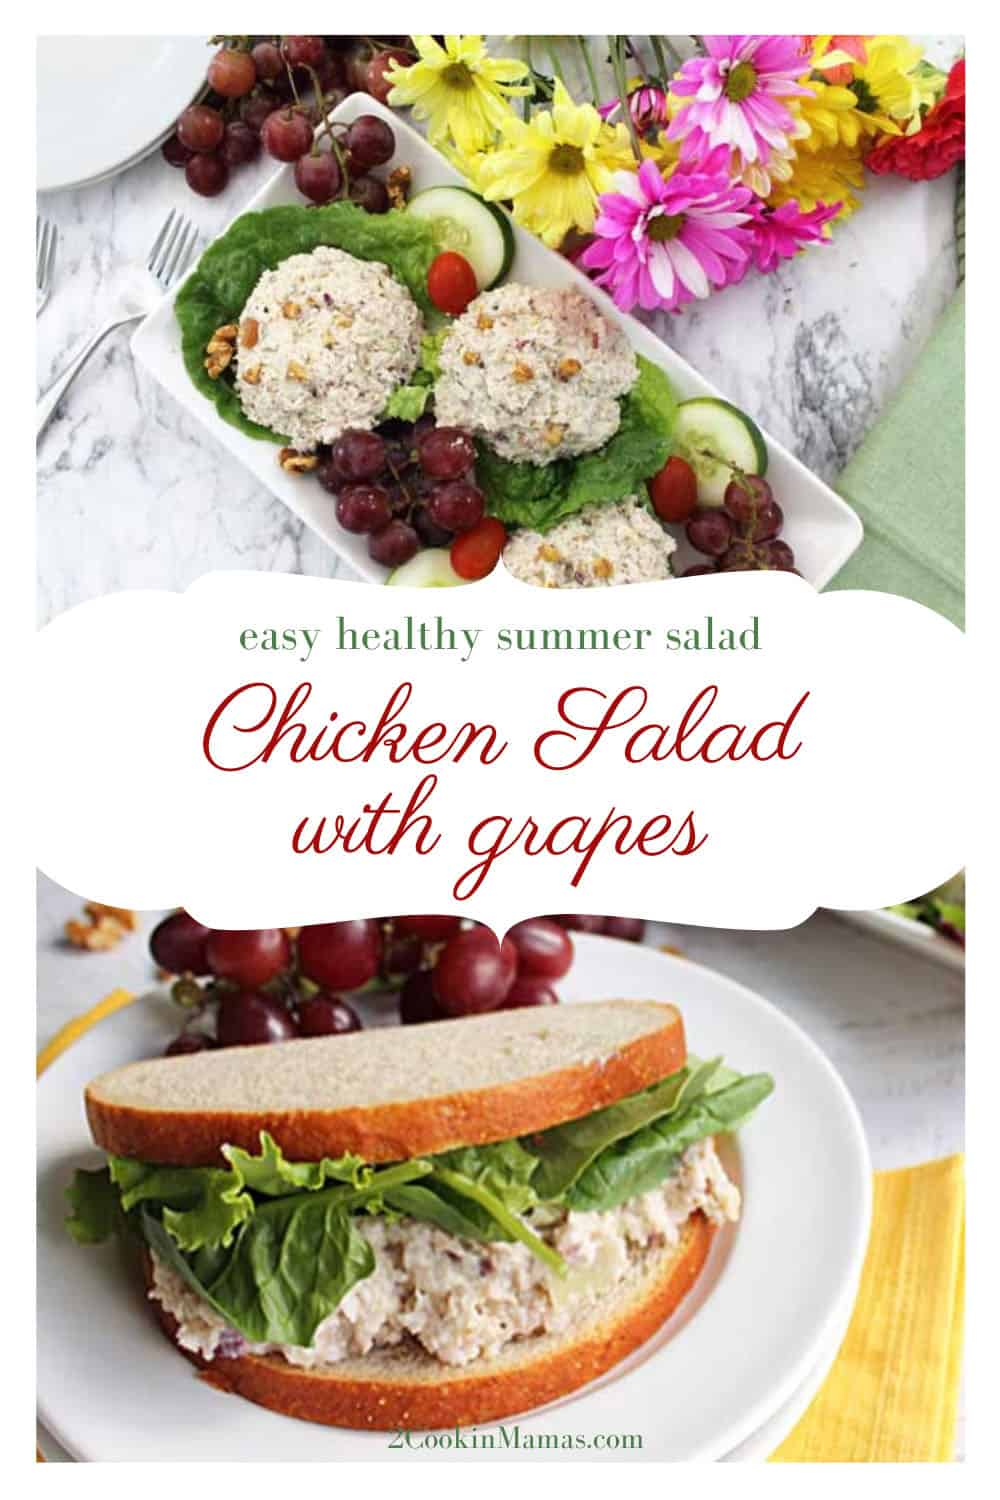 Healthy Chicken Salad with Grapes and Walnuts